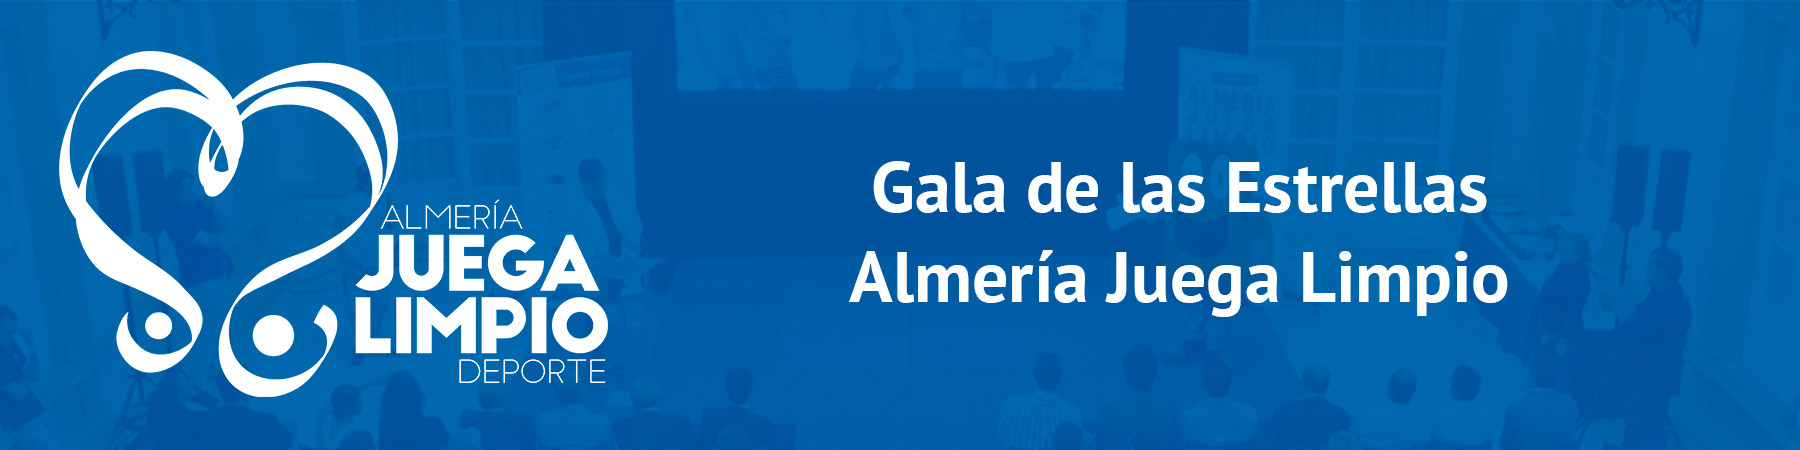 Premios y Galardones Almería Juega Limpio